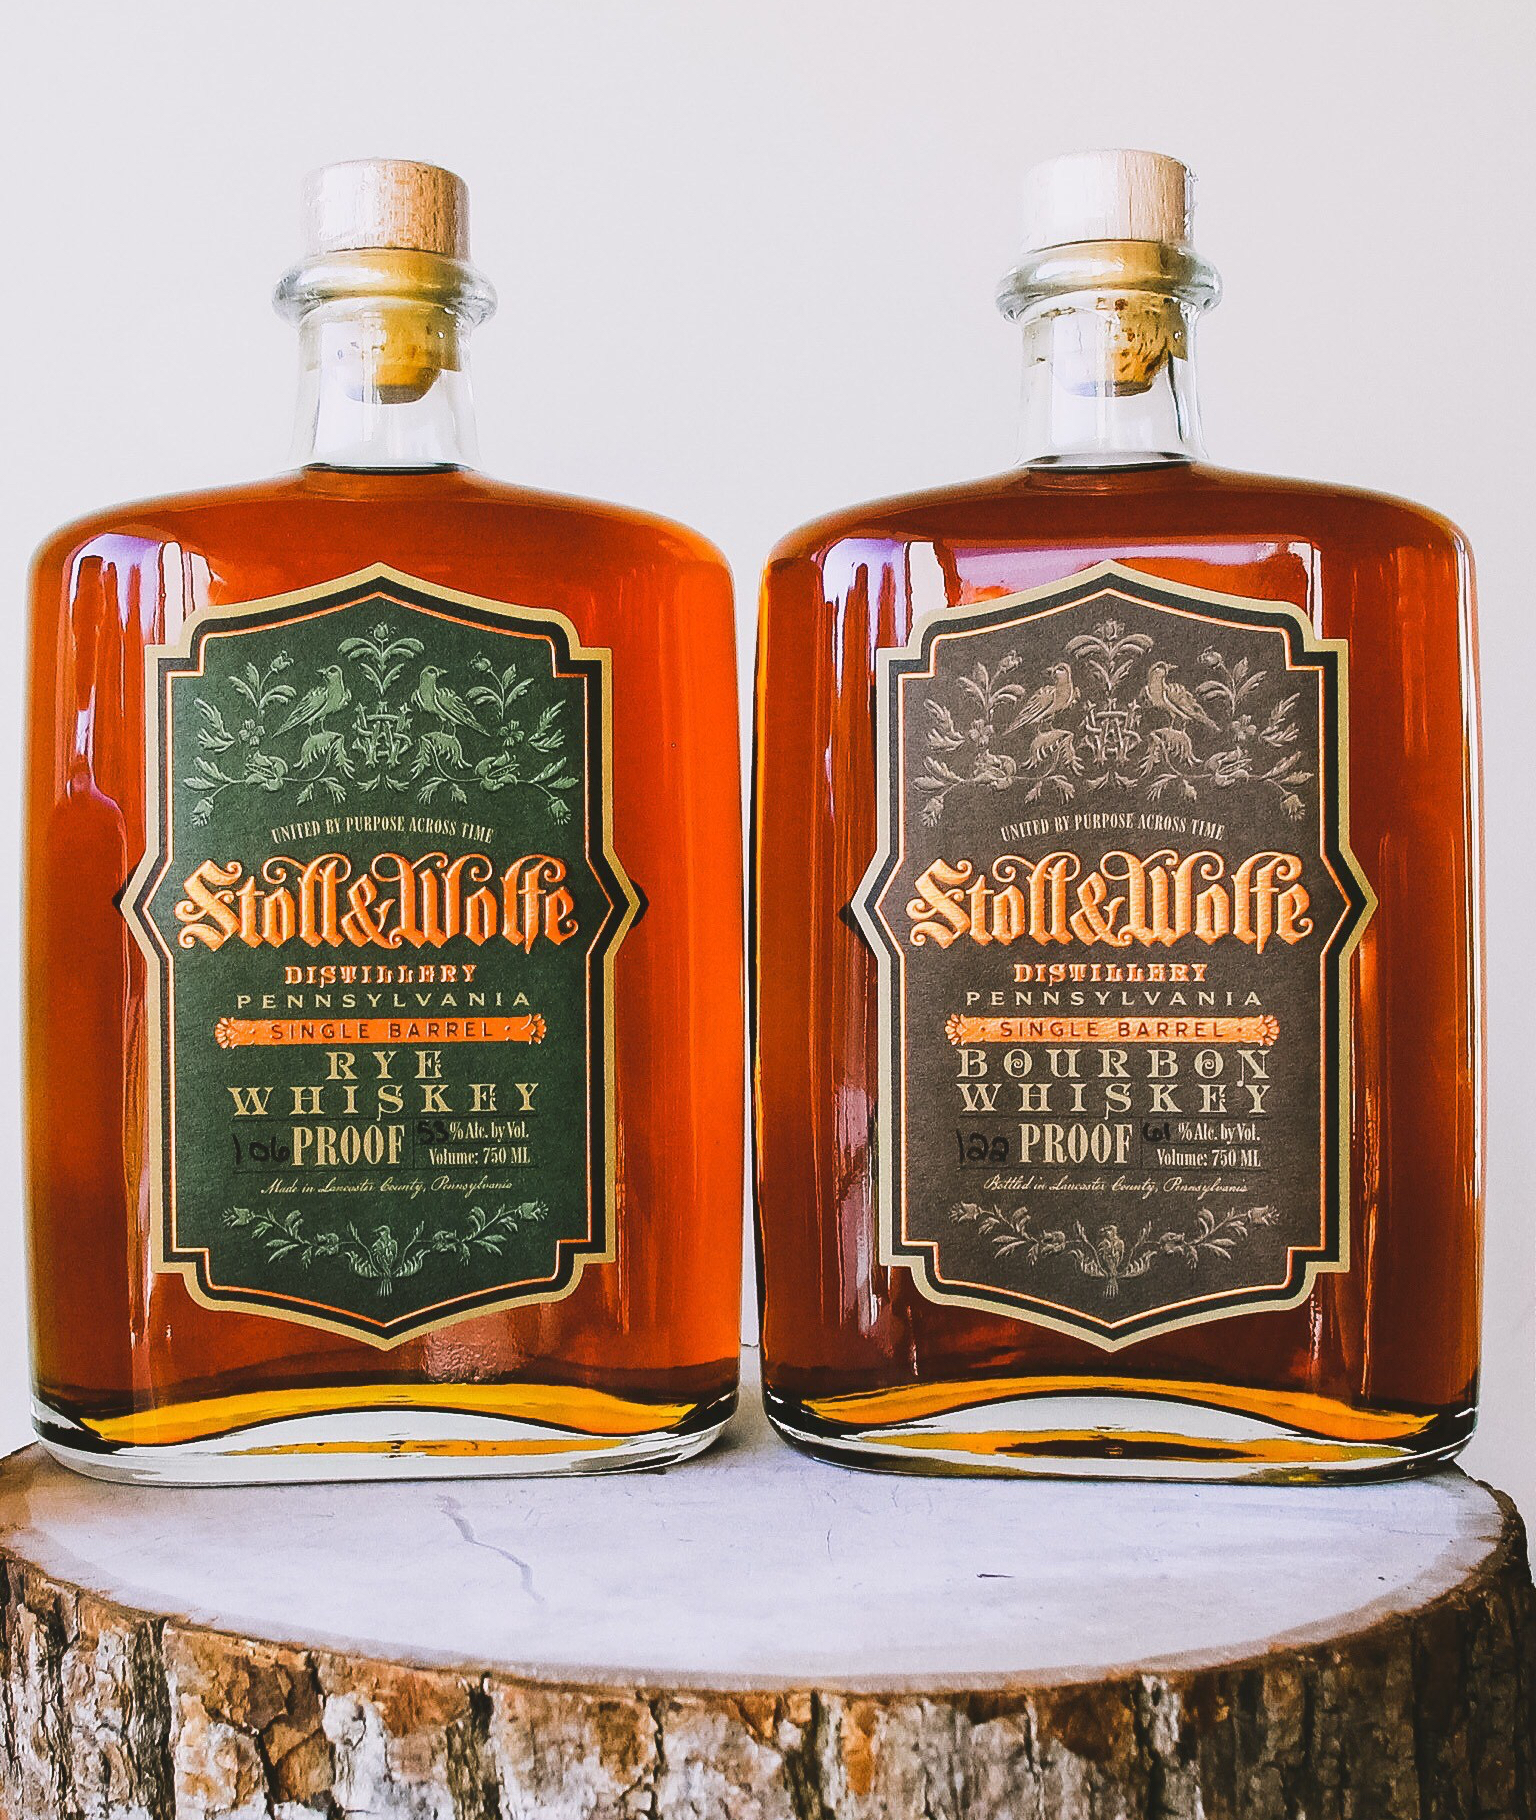 Stoll and Wolfe Cask Strength Rye Whiskey and Stoll and Wolfe Cask Strength Bourbon Whiskey.